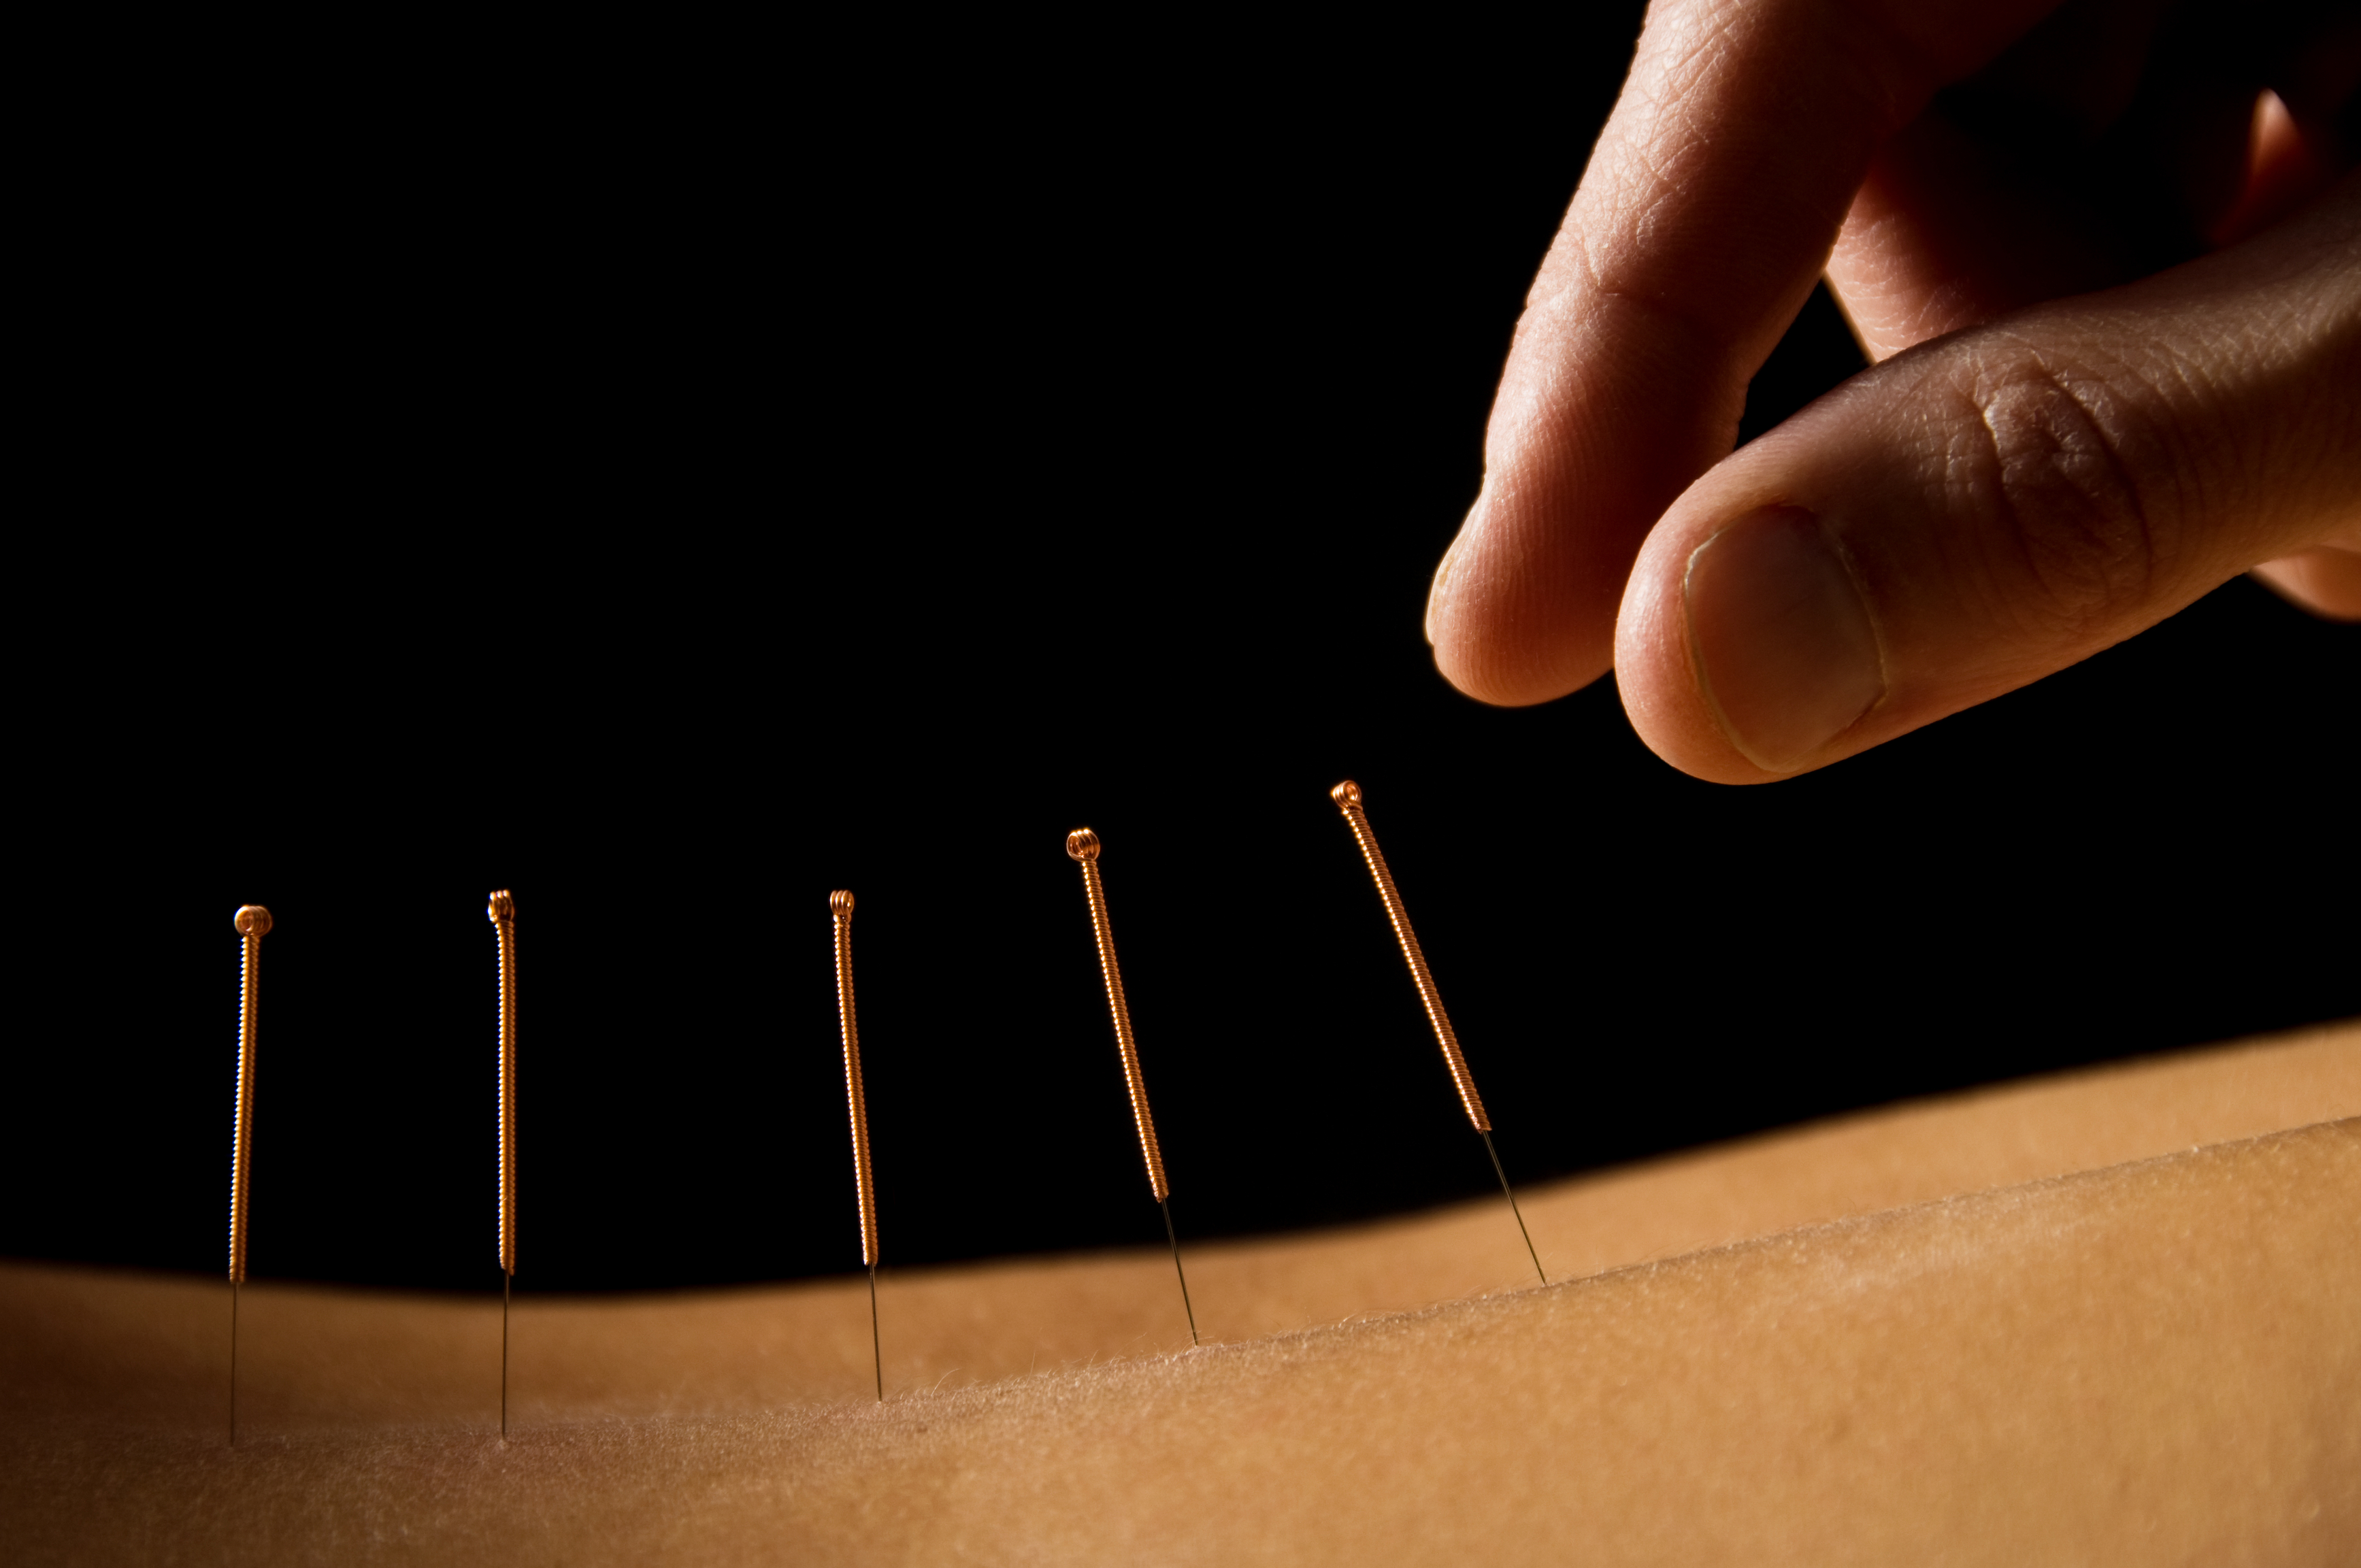 The Science of Acupuncture Safety: Risks, Harms, and Ancient Goodness